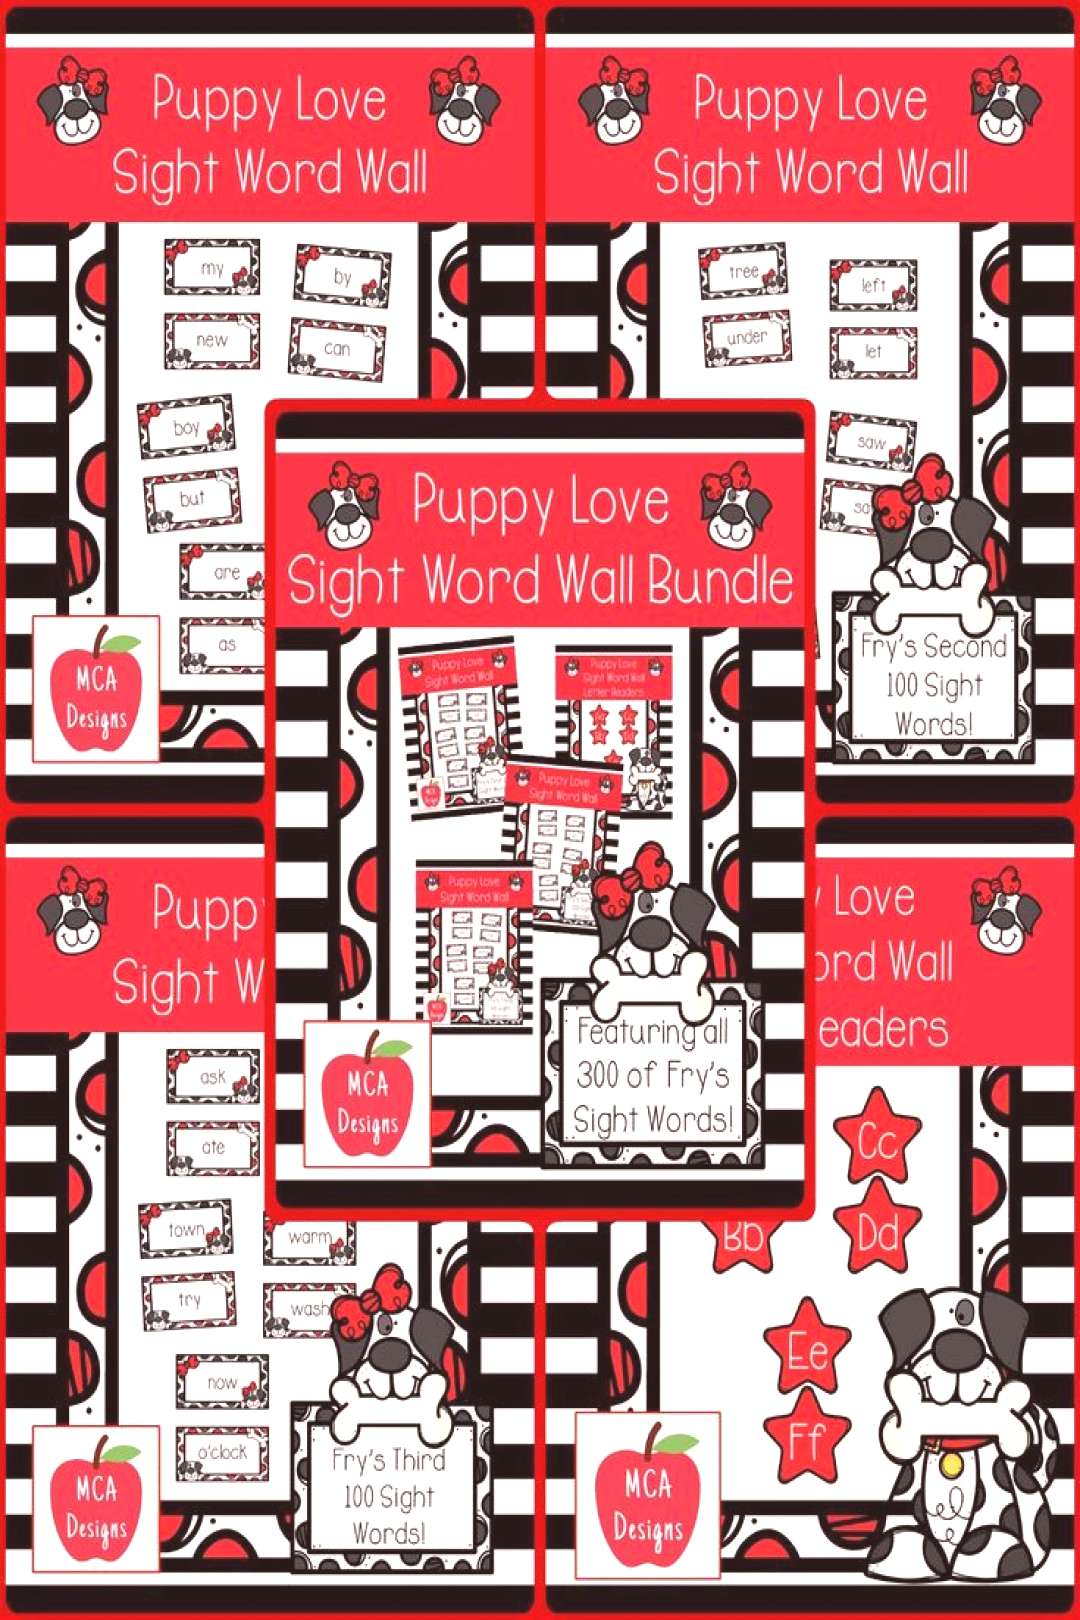 Puppy Love - Sight Word Wall Bundle This bundle features all 300 of Frys sight words! 183 pages of